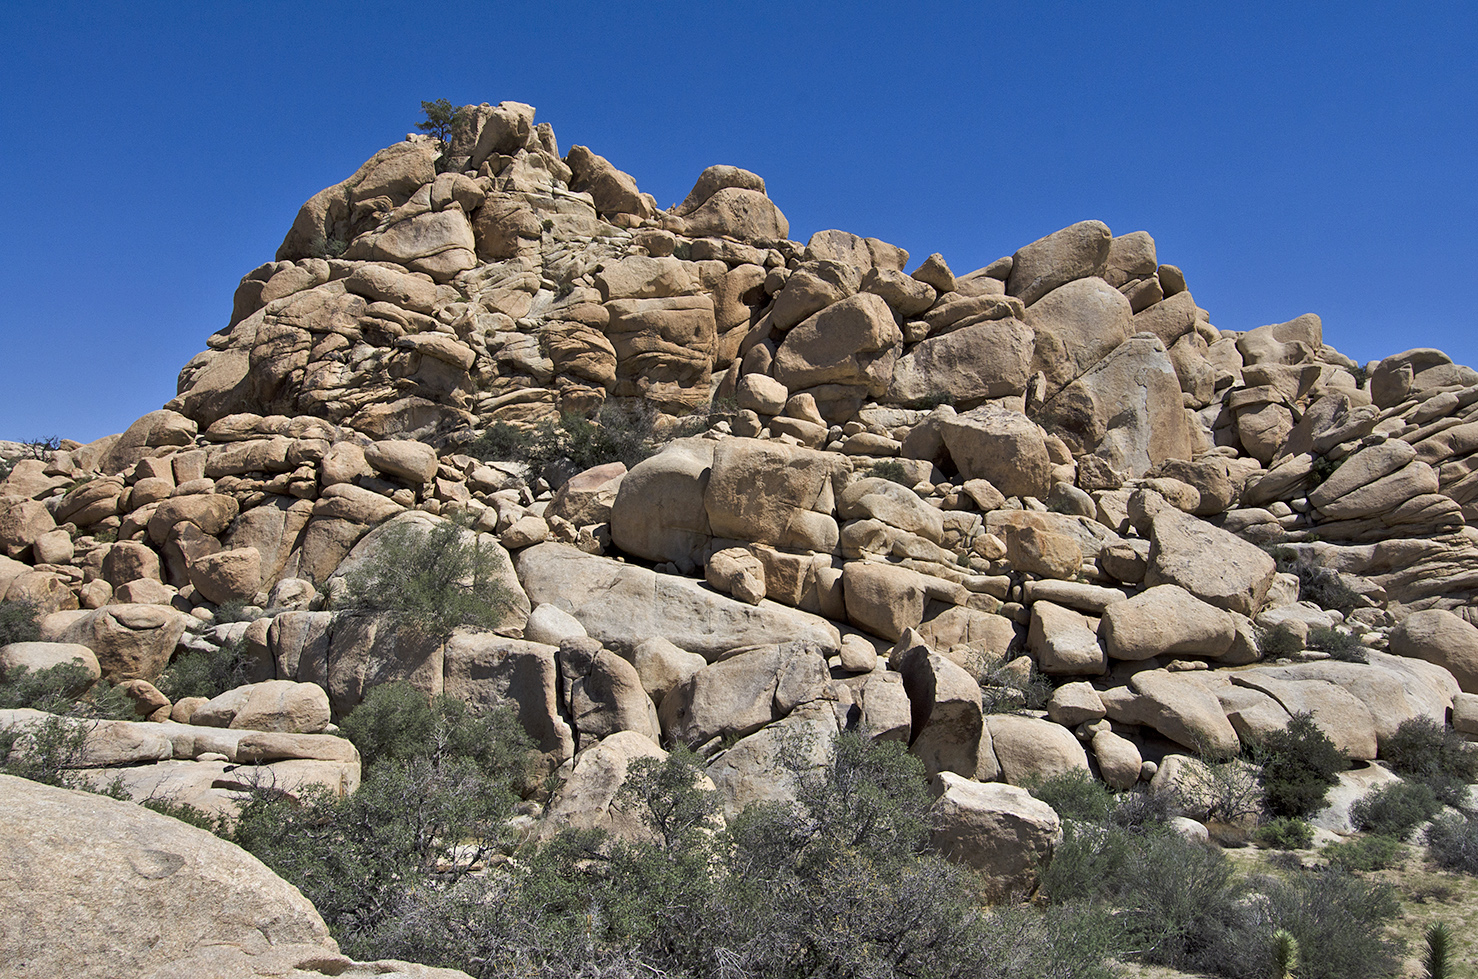 Enormous piles of huge boulders. Did the early inhabitants of Joshua Tree send their kids off looking for places to camp?